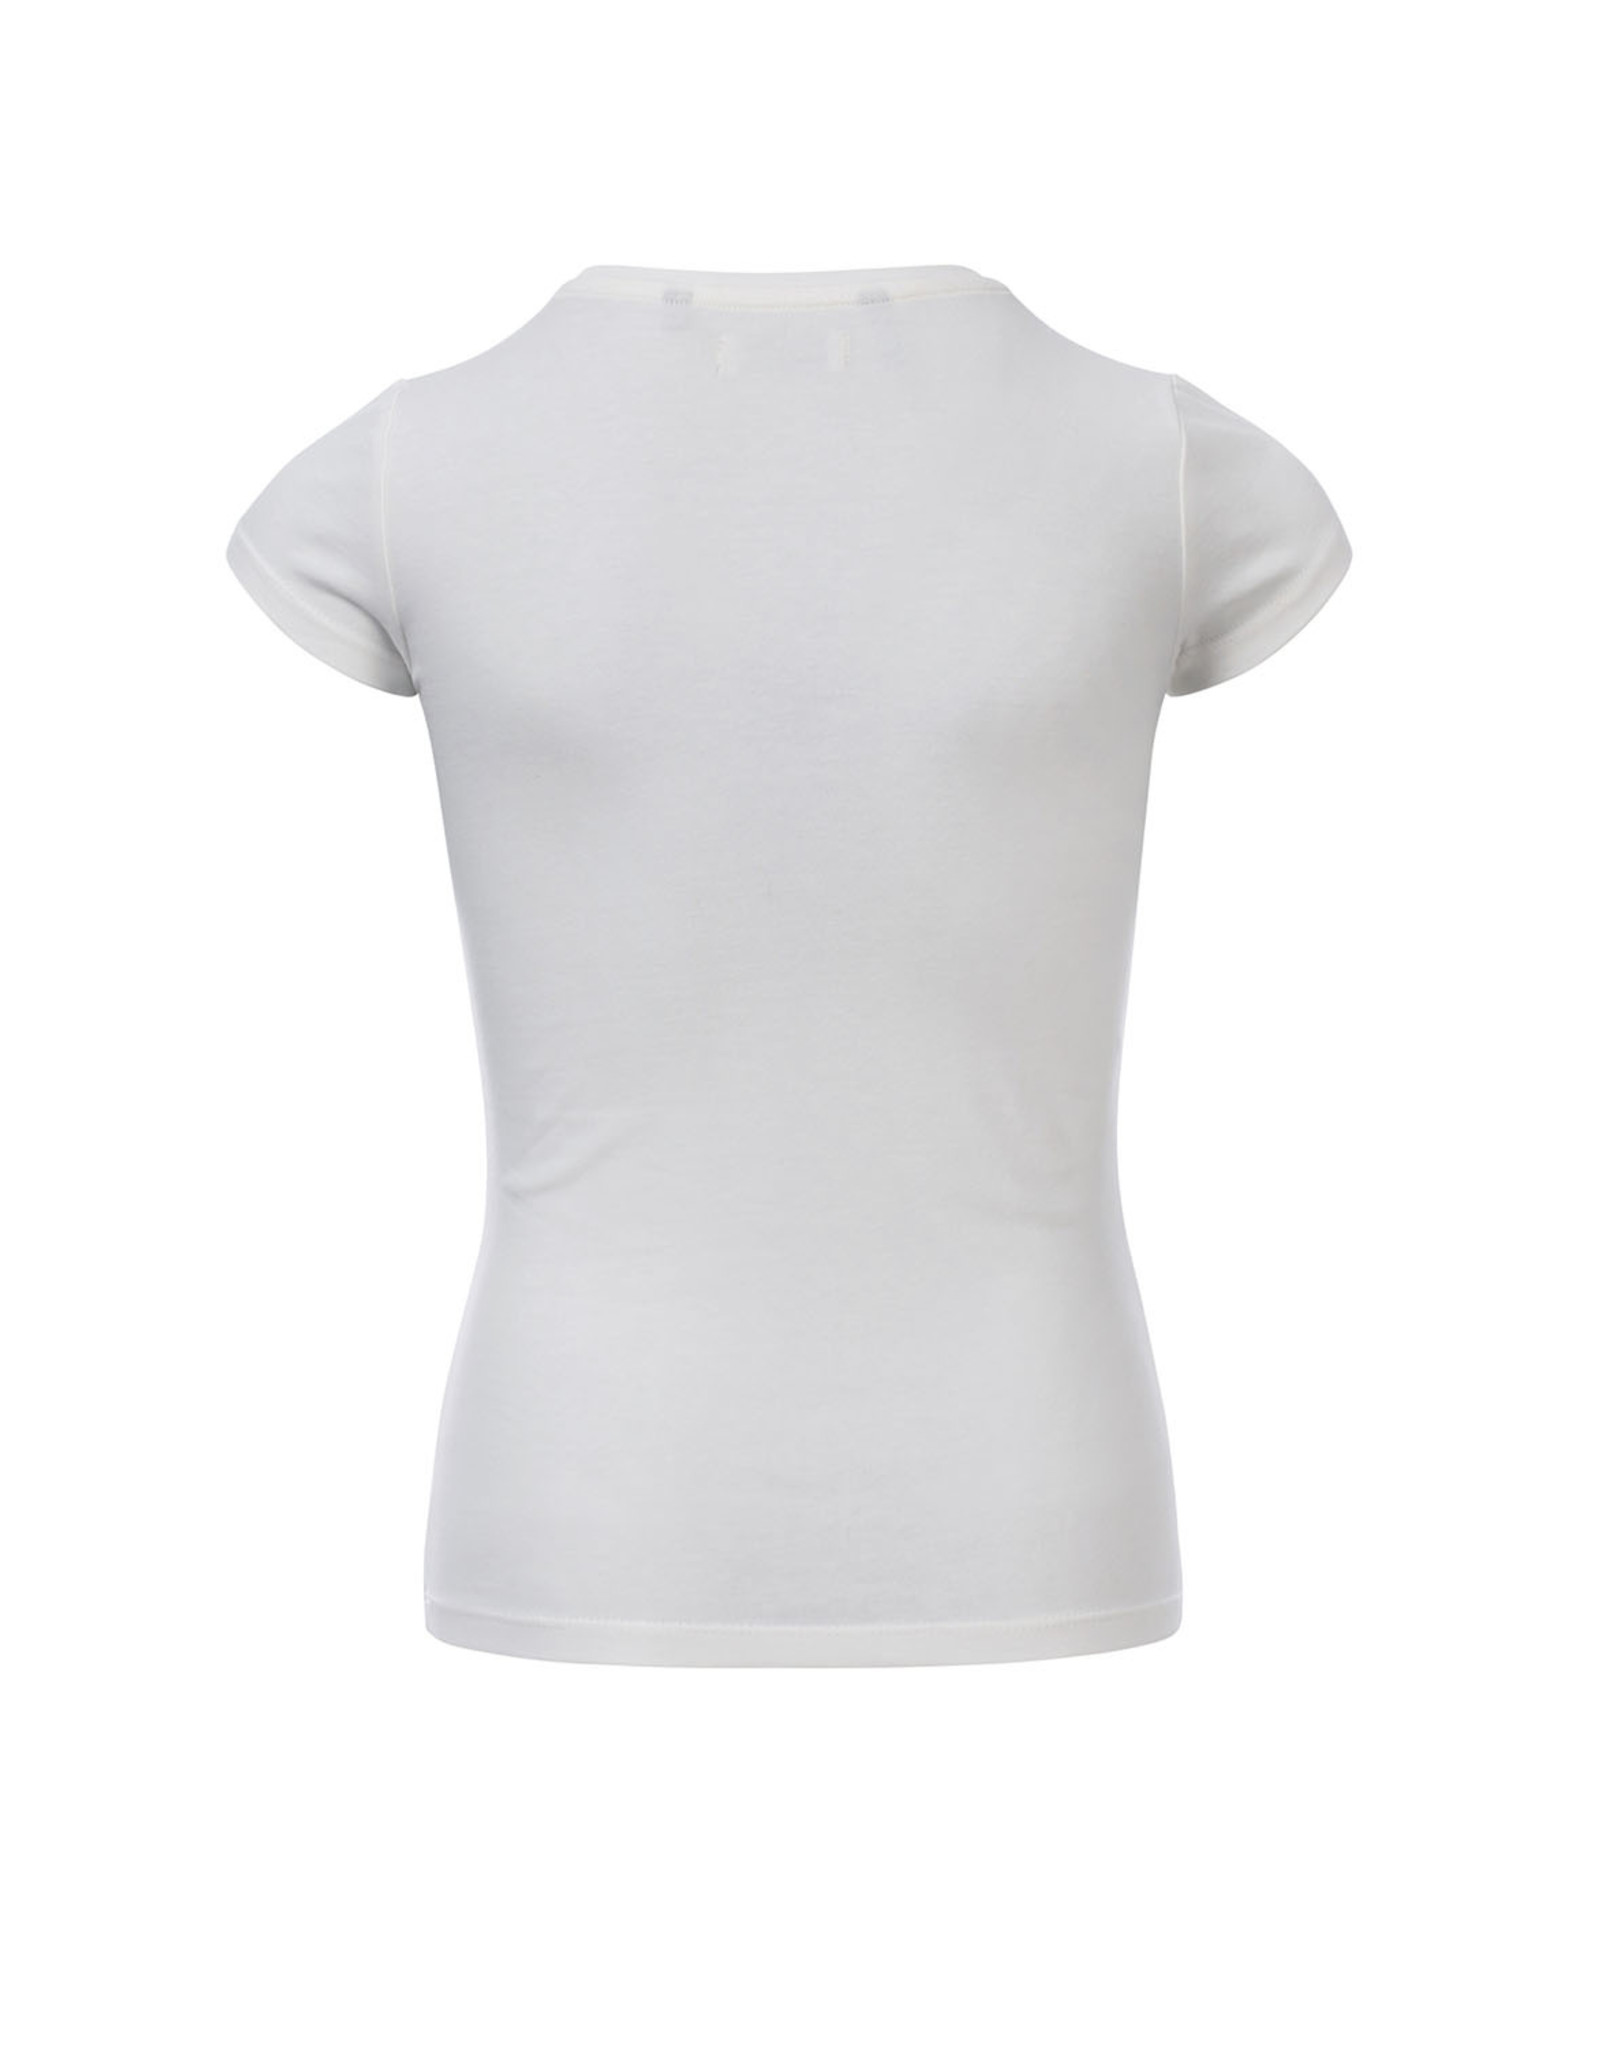 Looxs 10Sixteen T-shirt white lilly